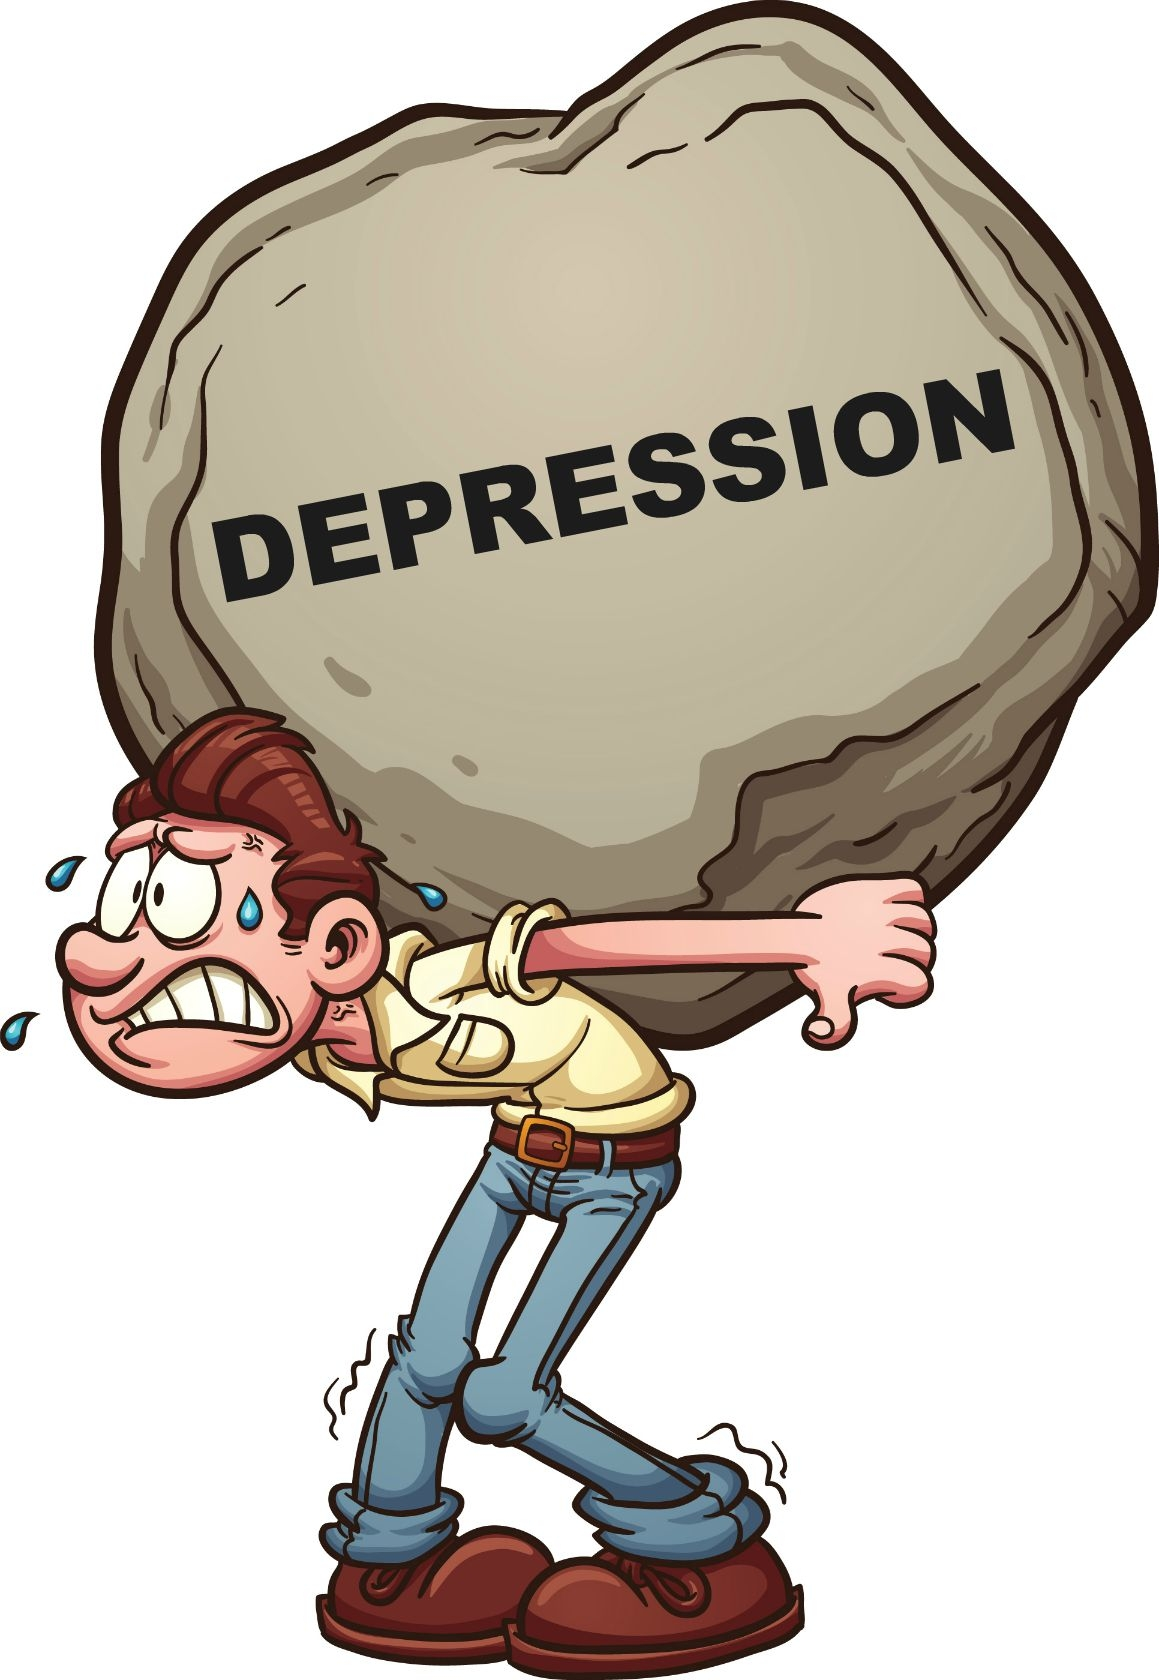 Depression clipart. Best of design digital